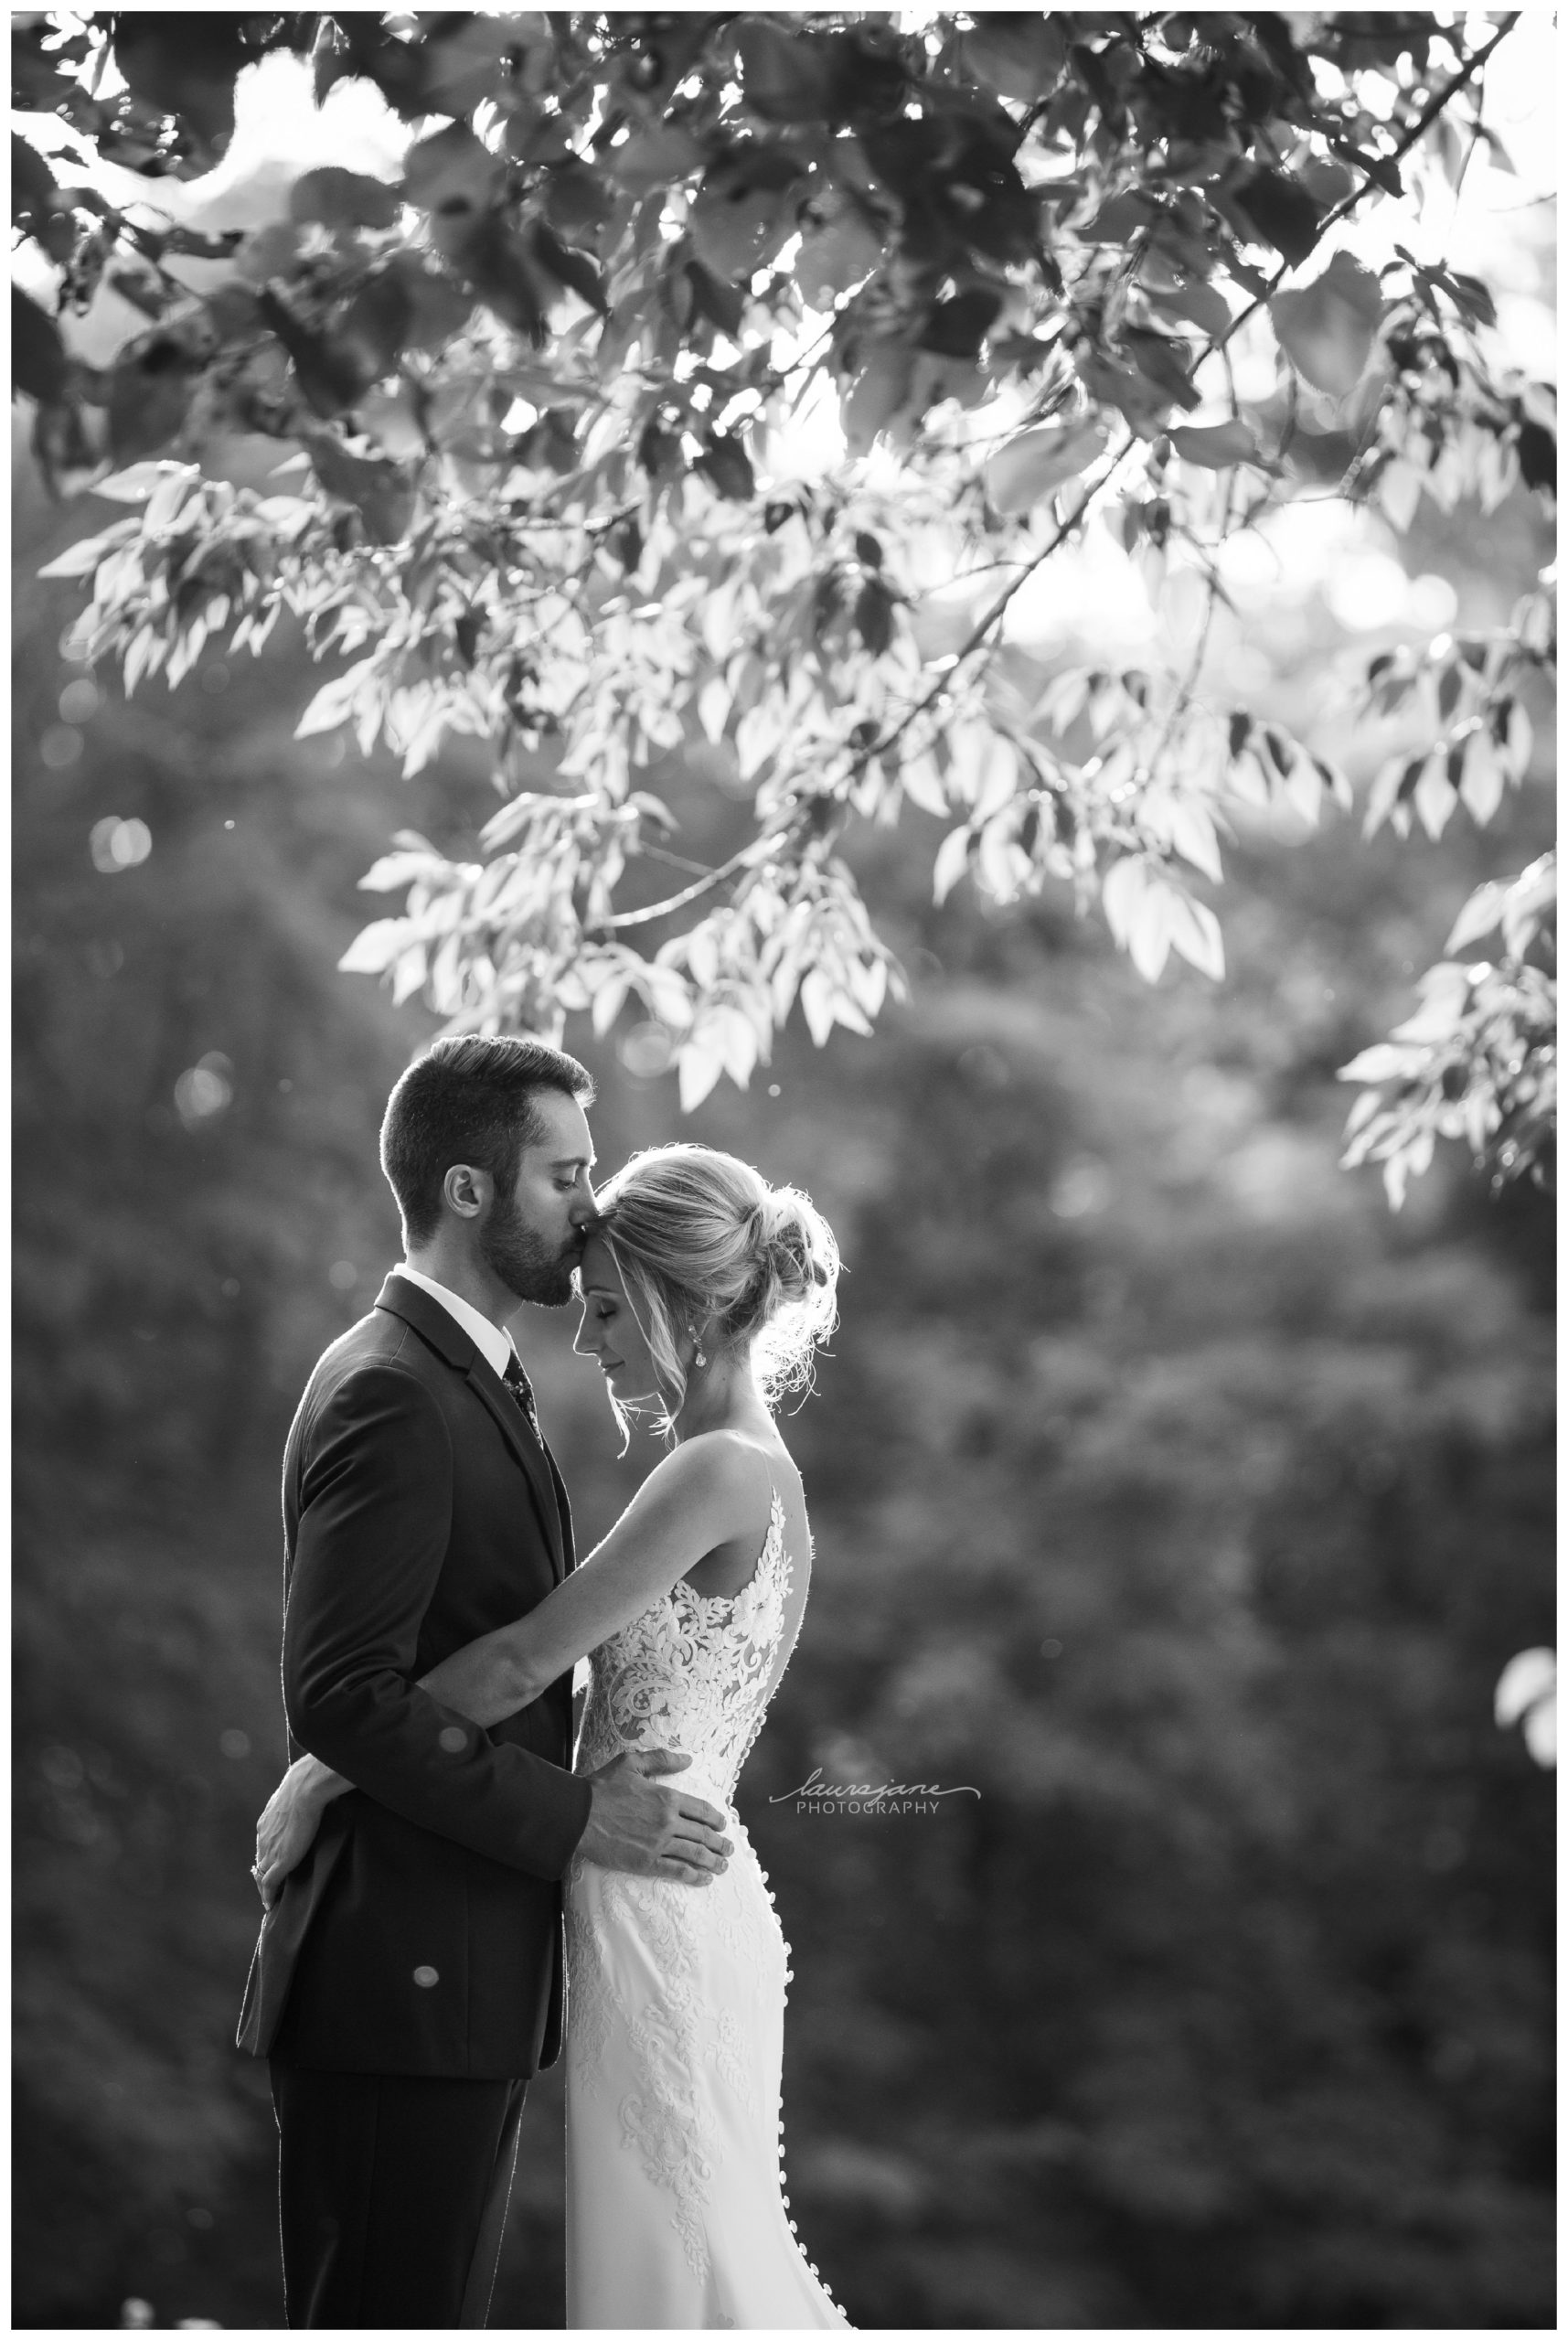 Bride and Groom Portrait at County Park